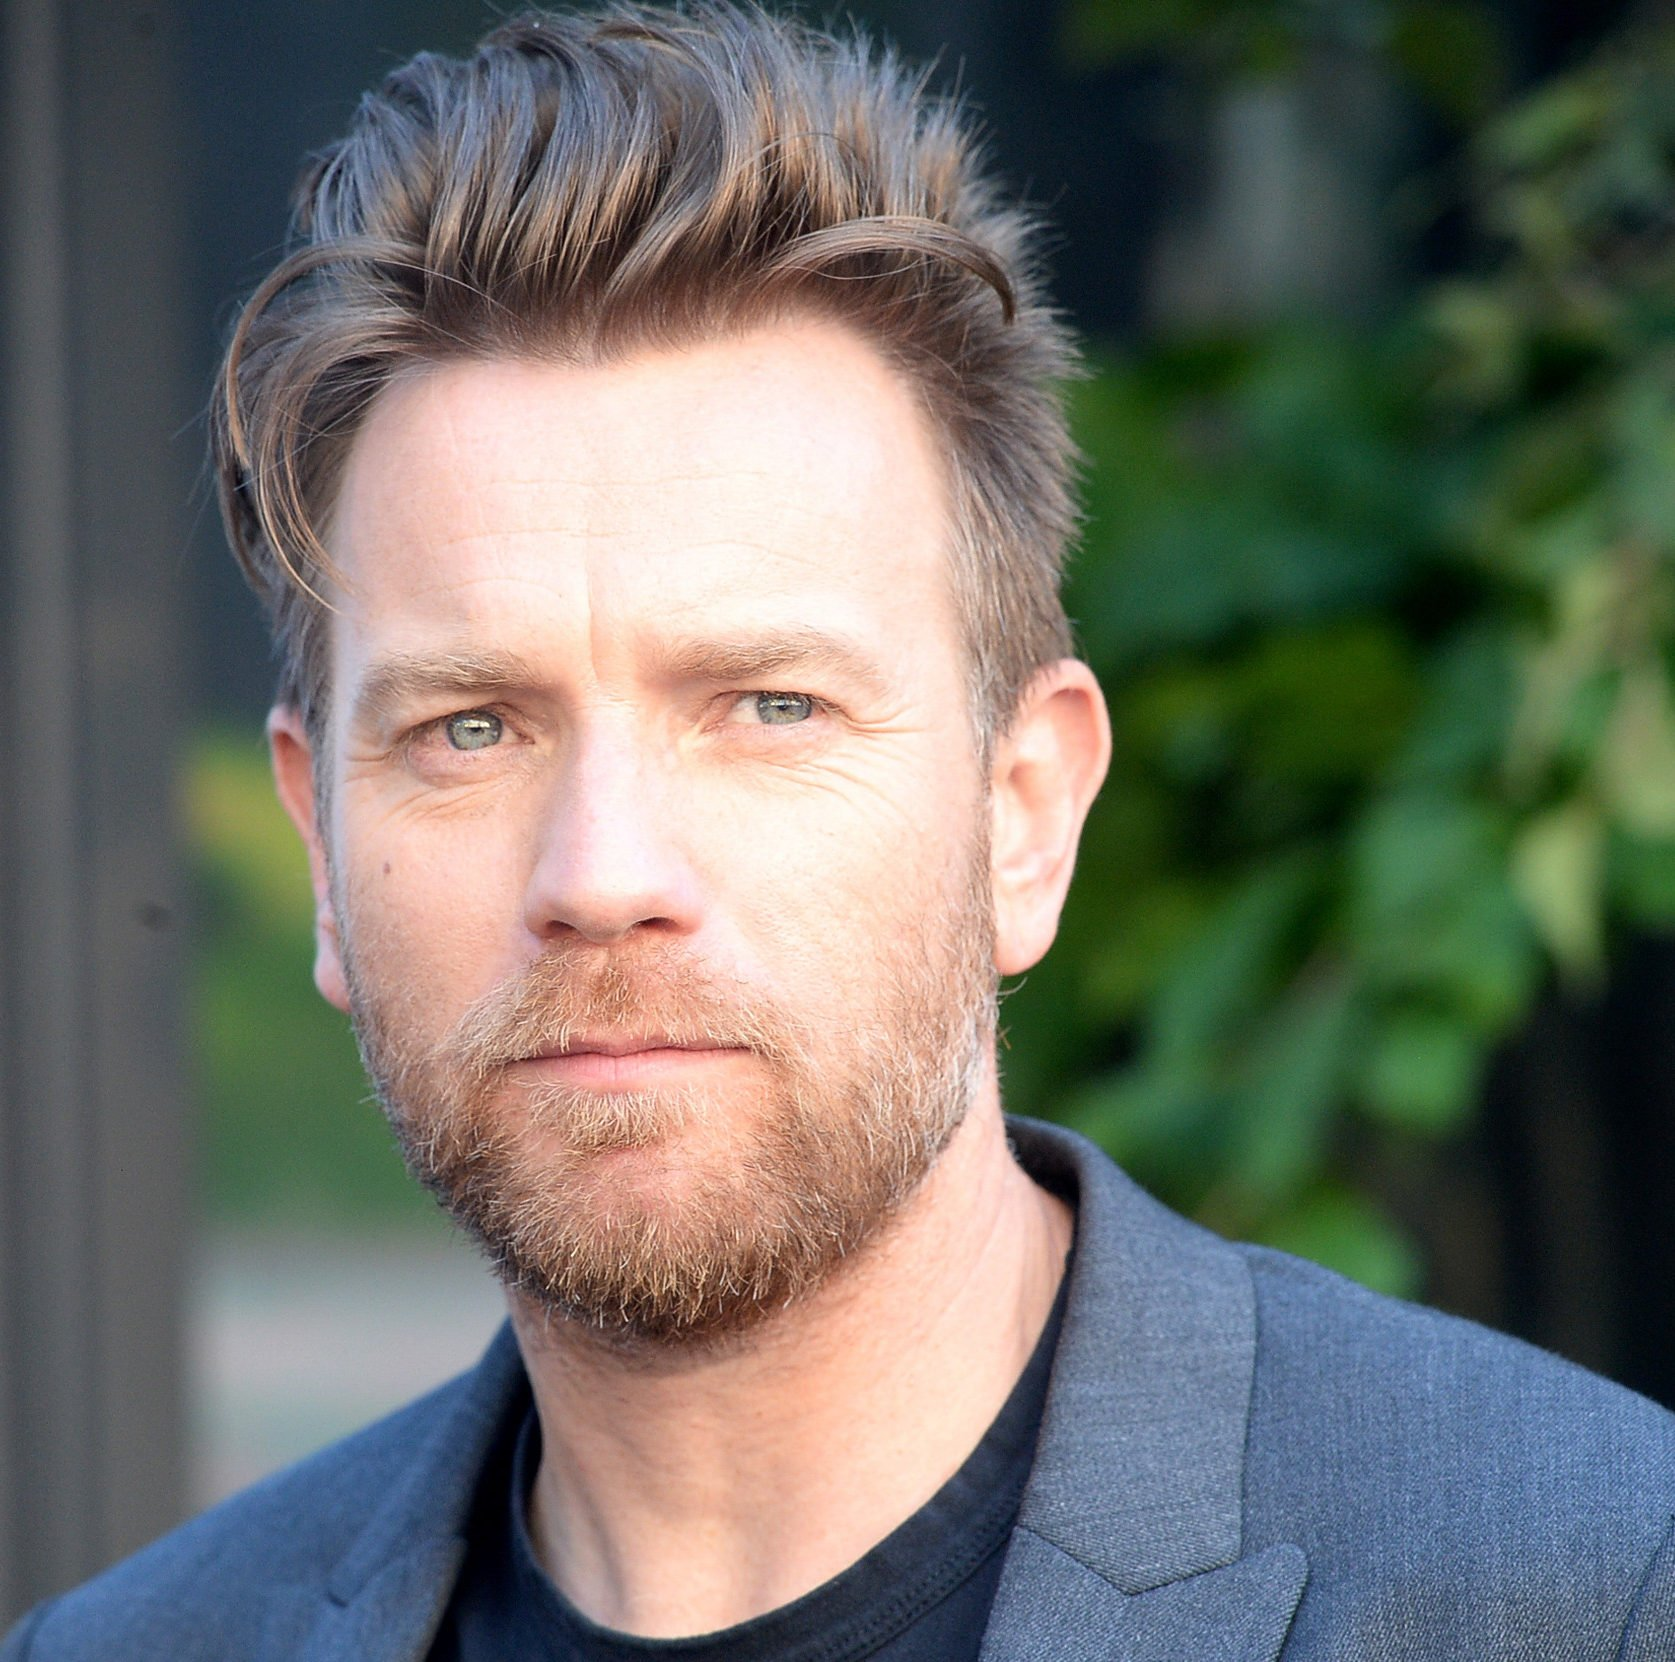 1 96 e1610439671384 20 Things You Probably Didn't Know About Ewan McGregor